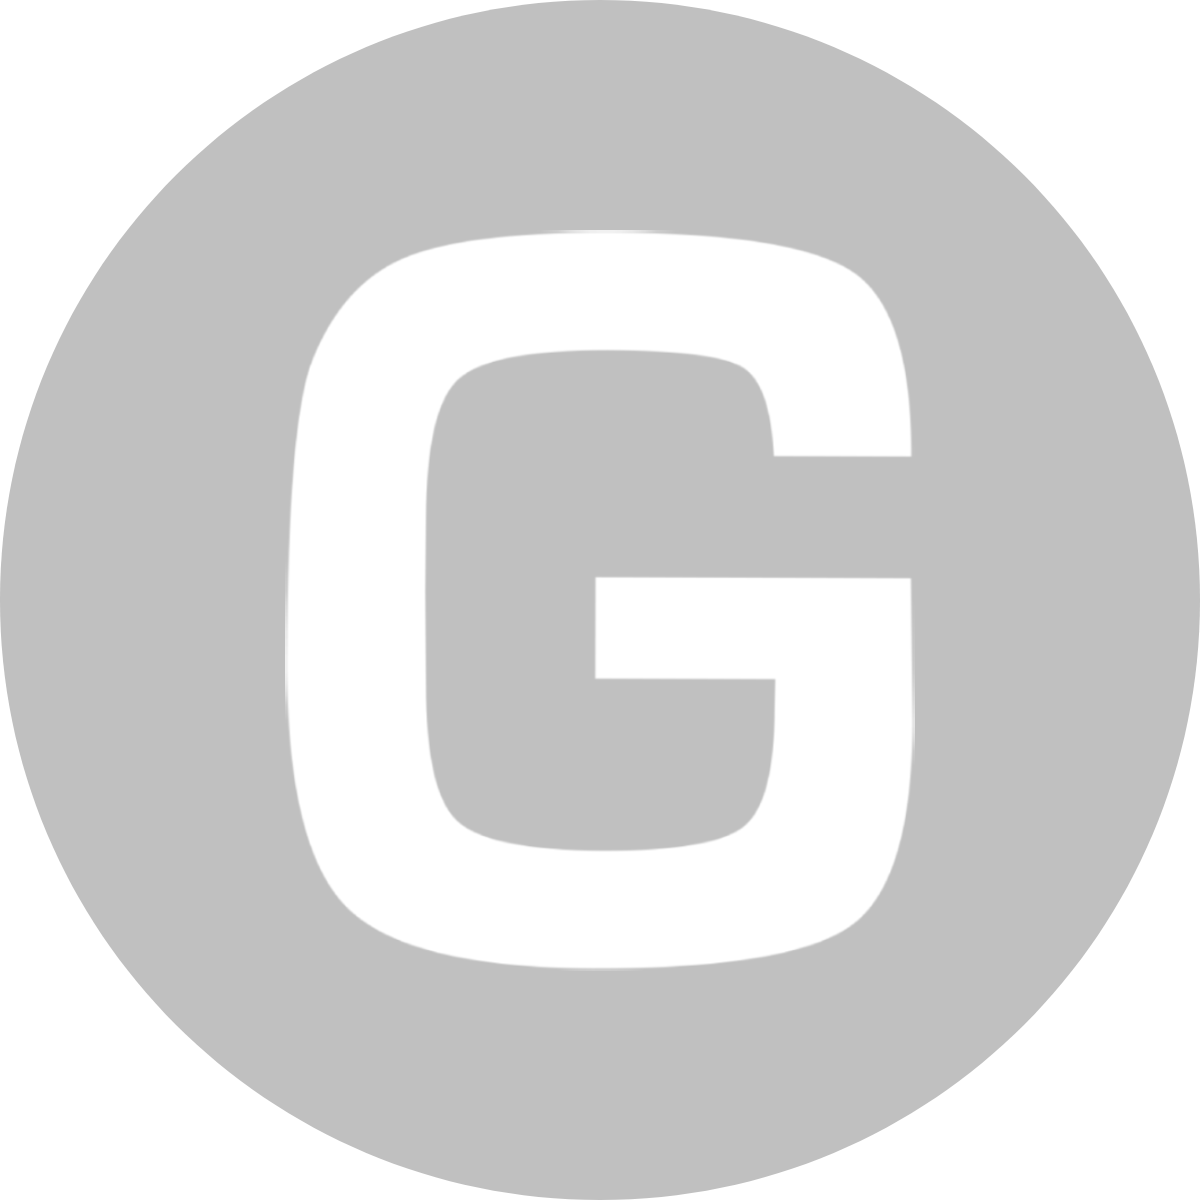 Cobra Jernsett KING Forged Tec 2019 One Length Stål 5-PW